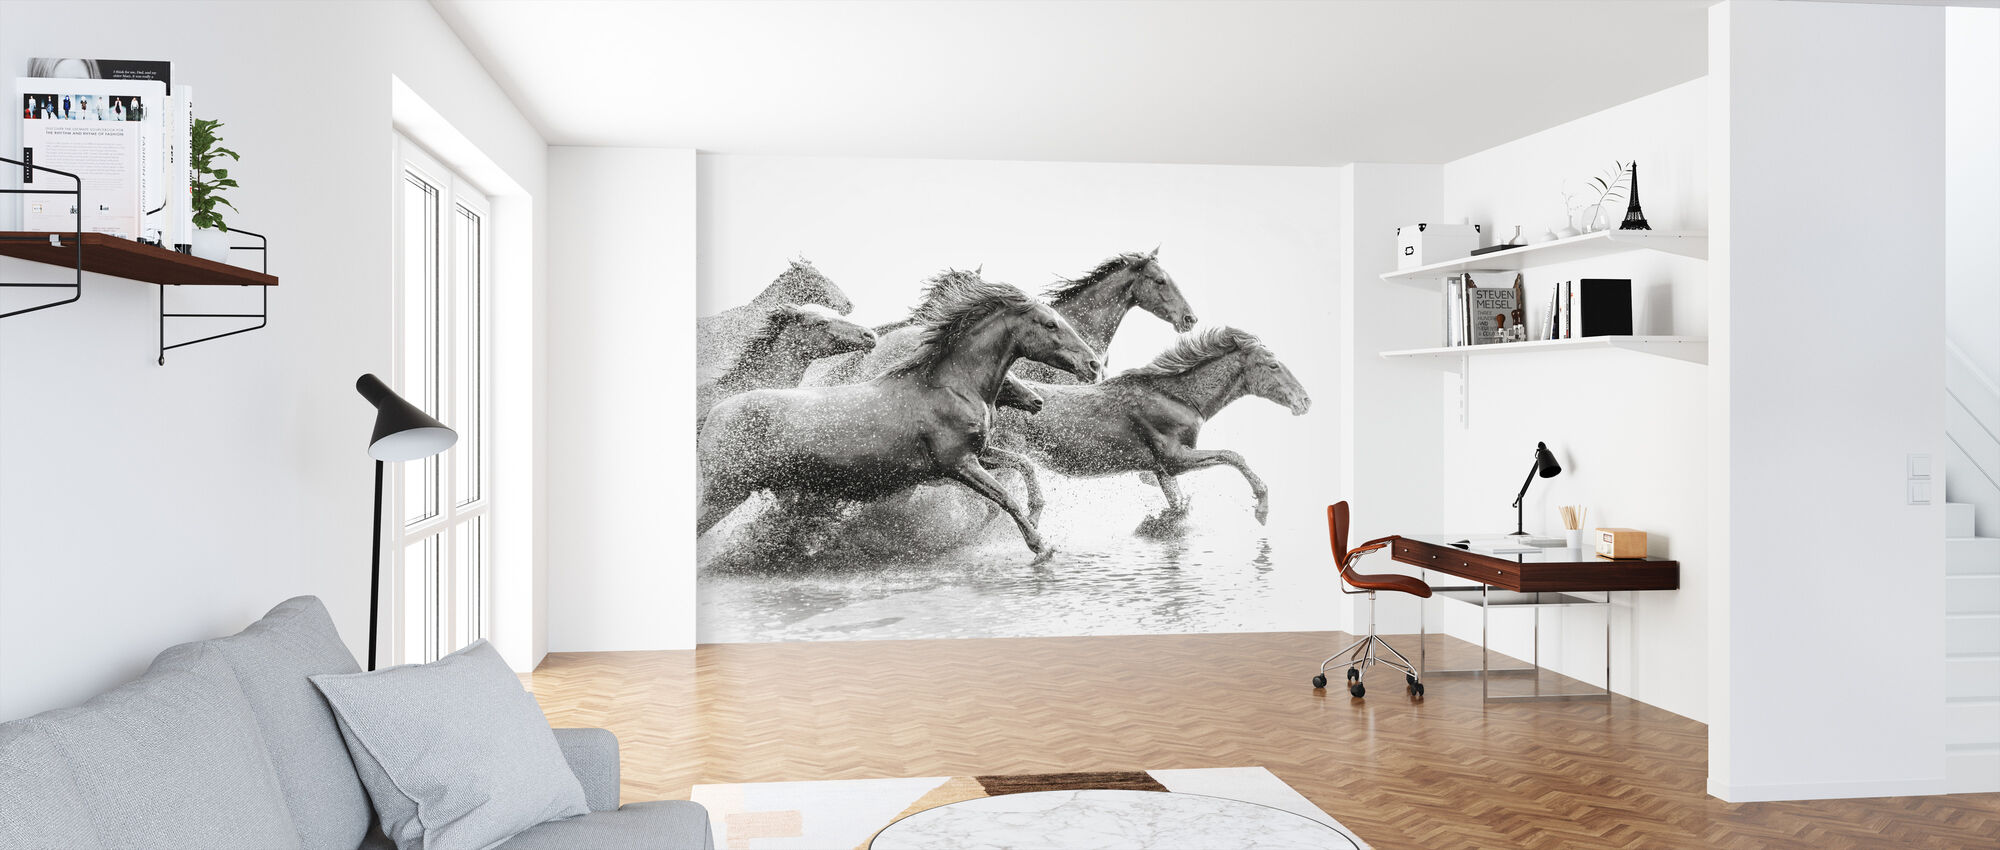 Herd of Wild Horses - Wallpaper - Office